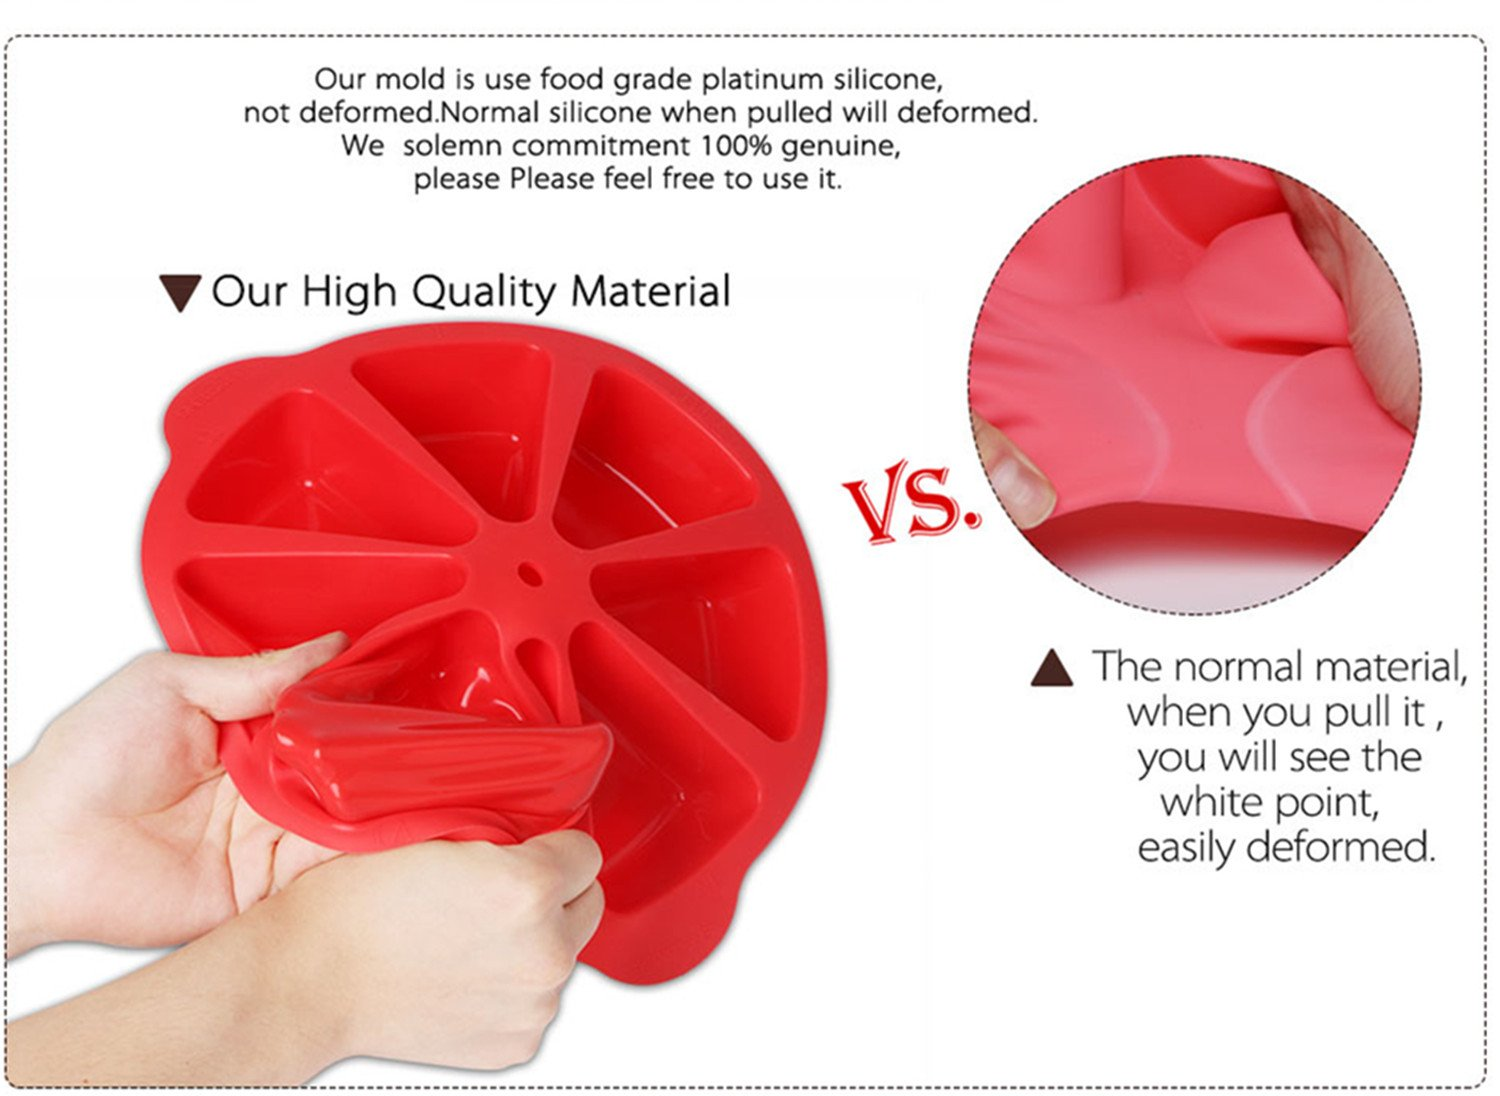 Baking Molds Triangle Cavity Silicone 8 Red Silicone Portion Cake Mold Soap Mould Pizza Slices Pan by SHEbaking (Image #4)